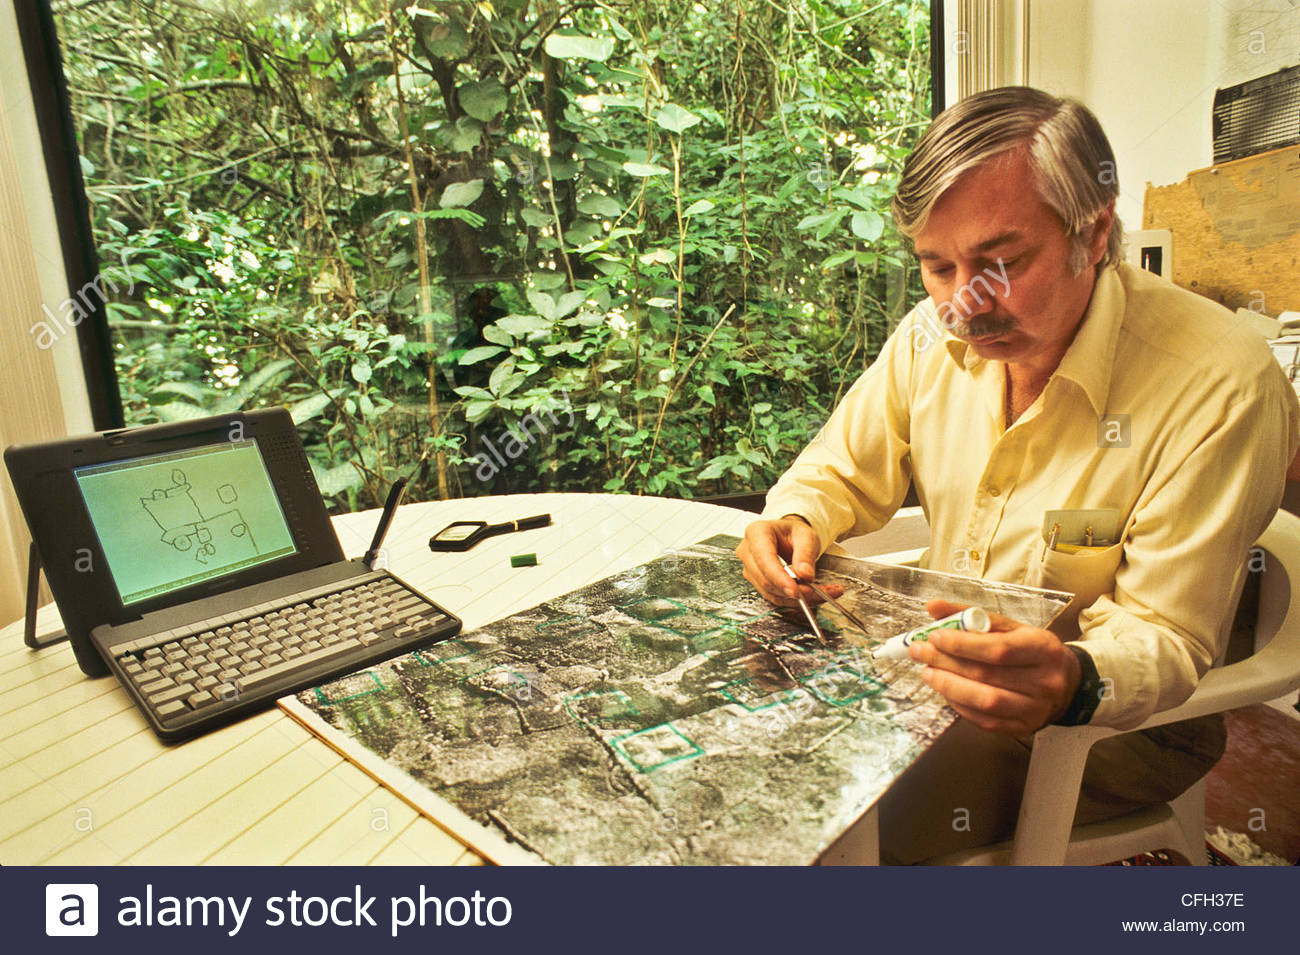 Dr. Jeffrey Wilkerson at his research station near Gutierrez Zamora. - Stock Image